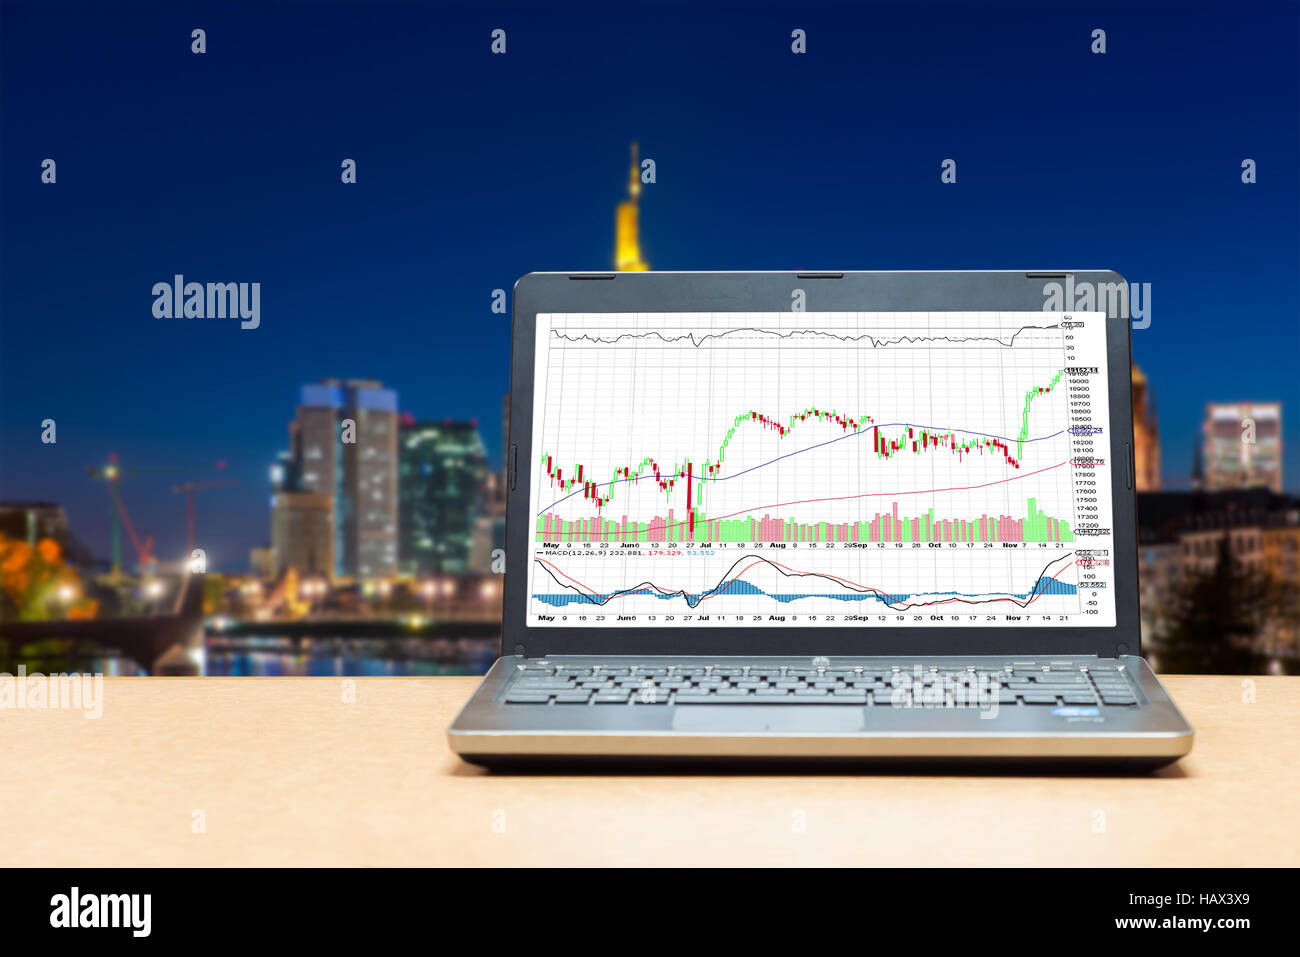 Business laptop on wood table showing business trading graph with cityscape building in background, Business trading - Stock Image